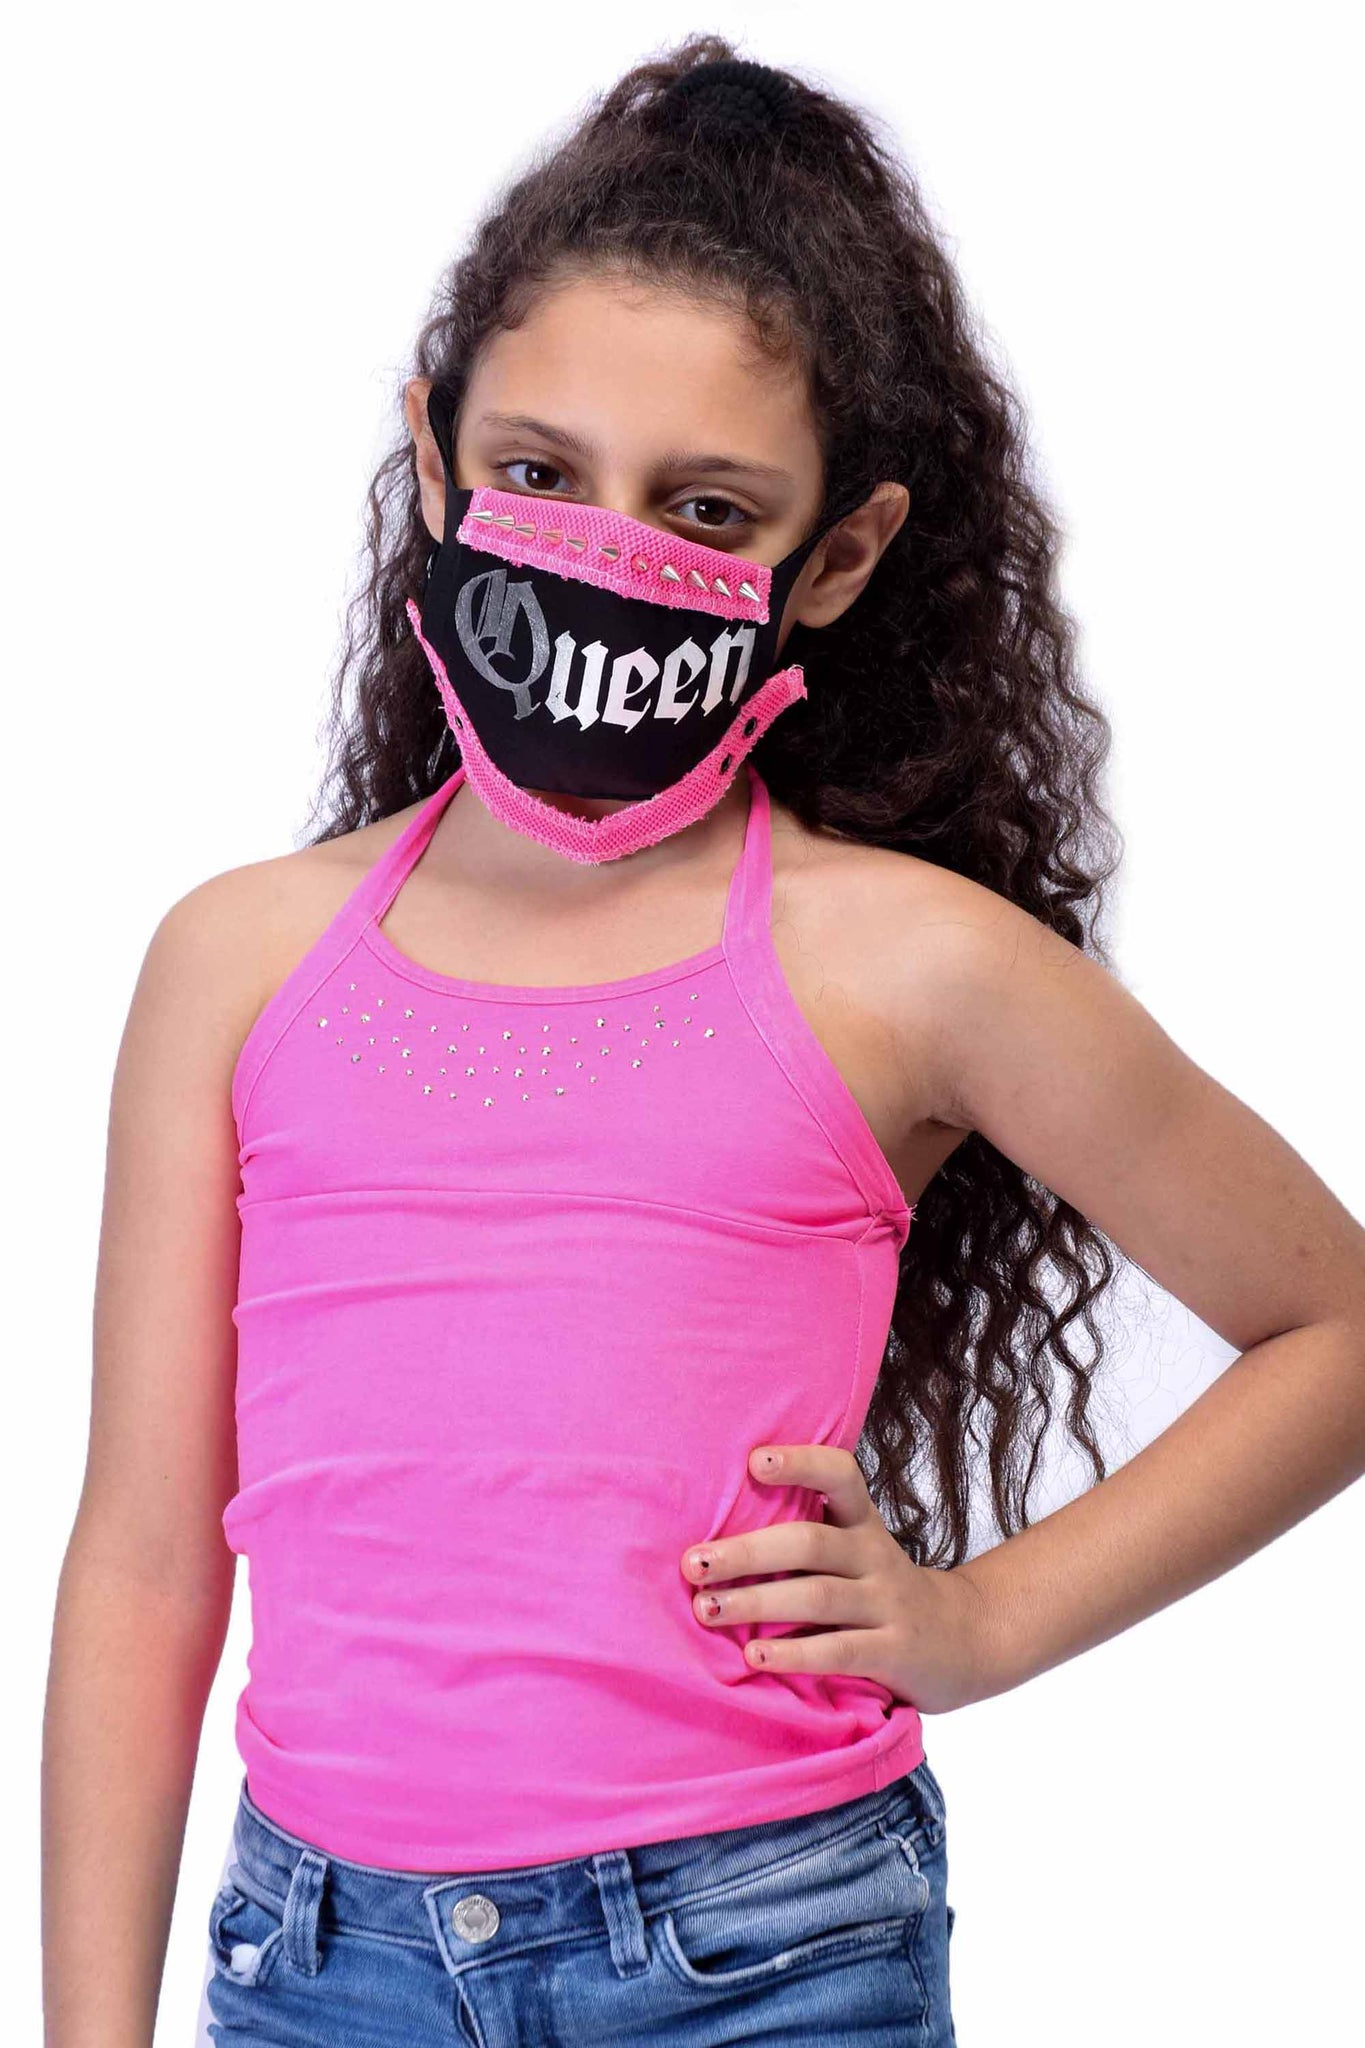 VIR Girls Mask Fashion Accessory #048